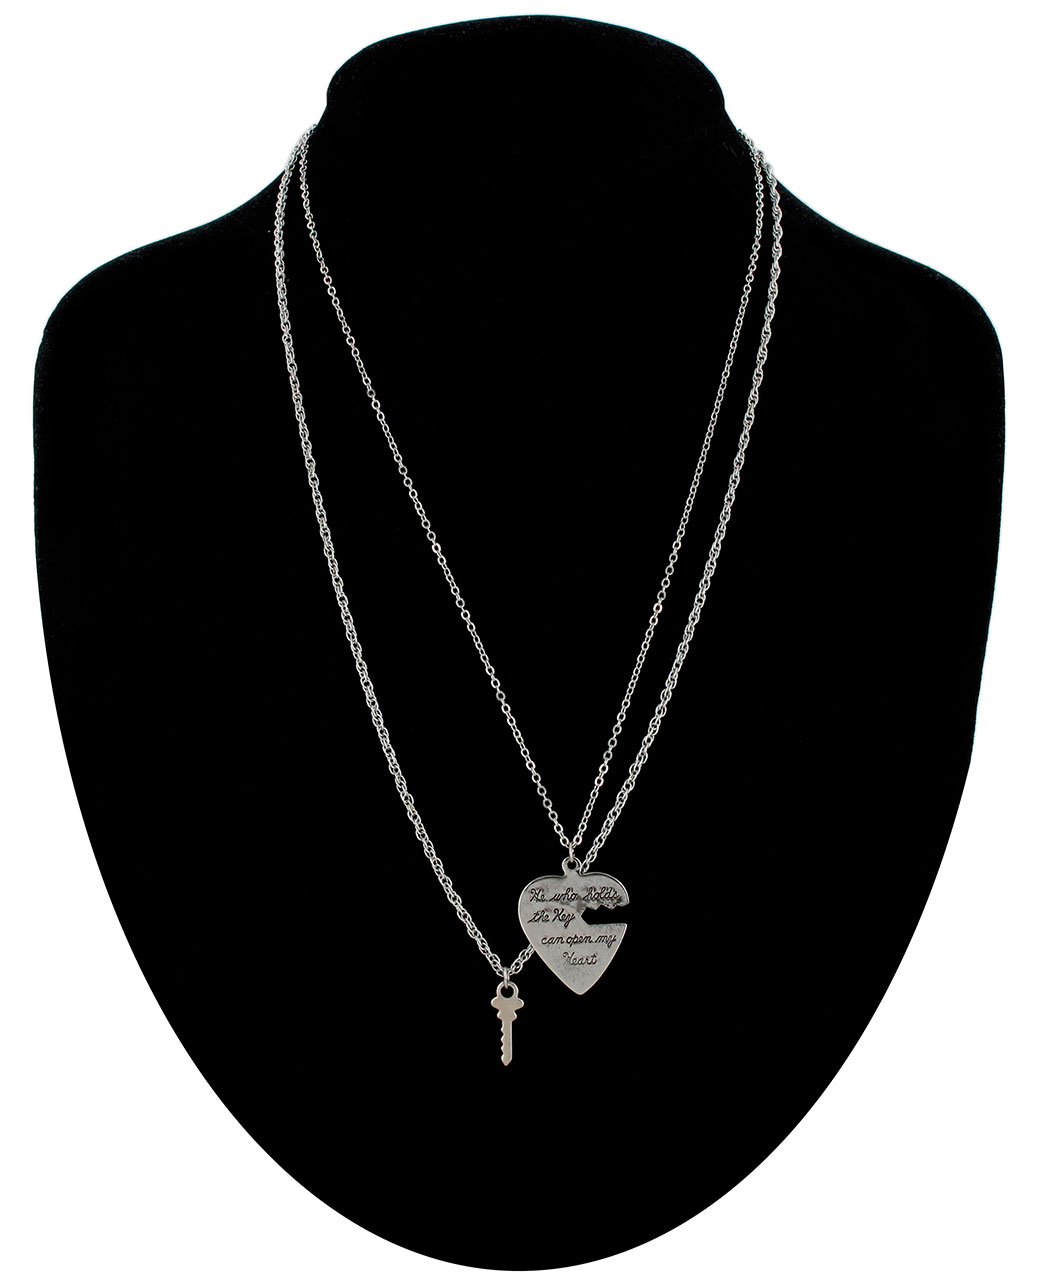 Ky & Co Pendant Key To My Heart Sweetheart Necklace Small Couples Silver Tone